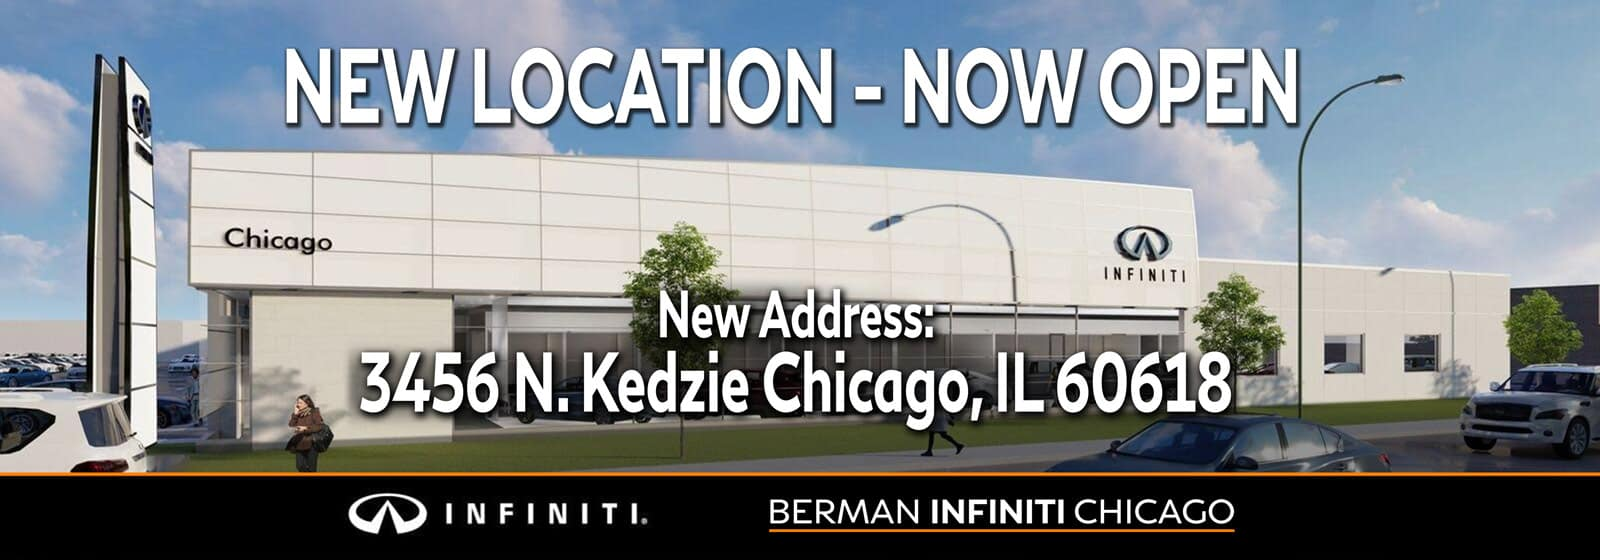 New Location - Now OPEN! Our new location is 3456 N. Kedzie Ave